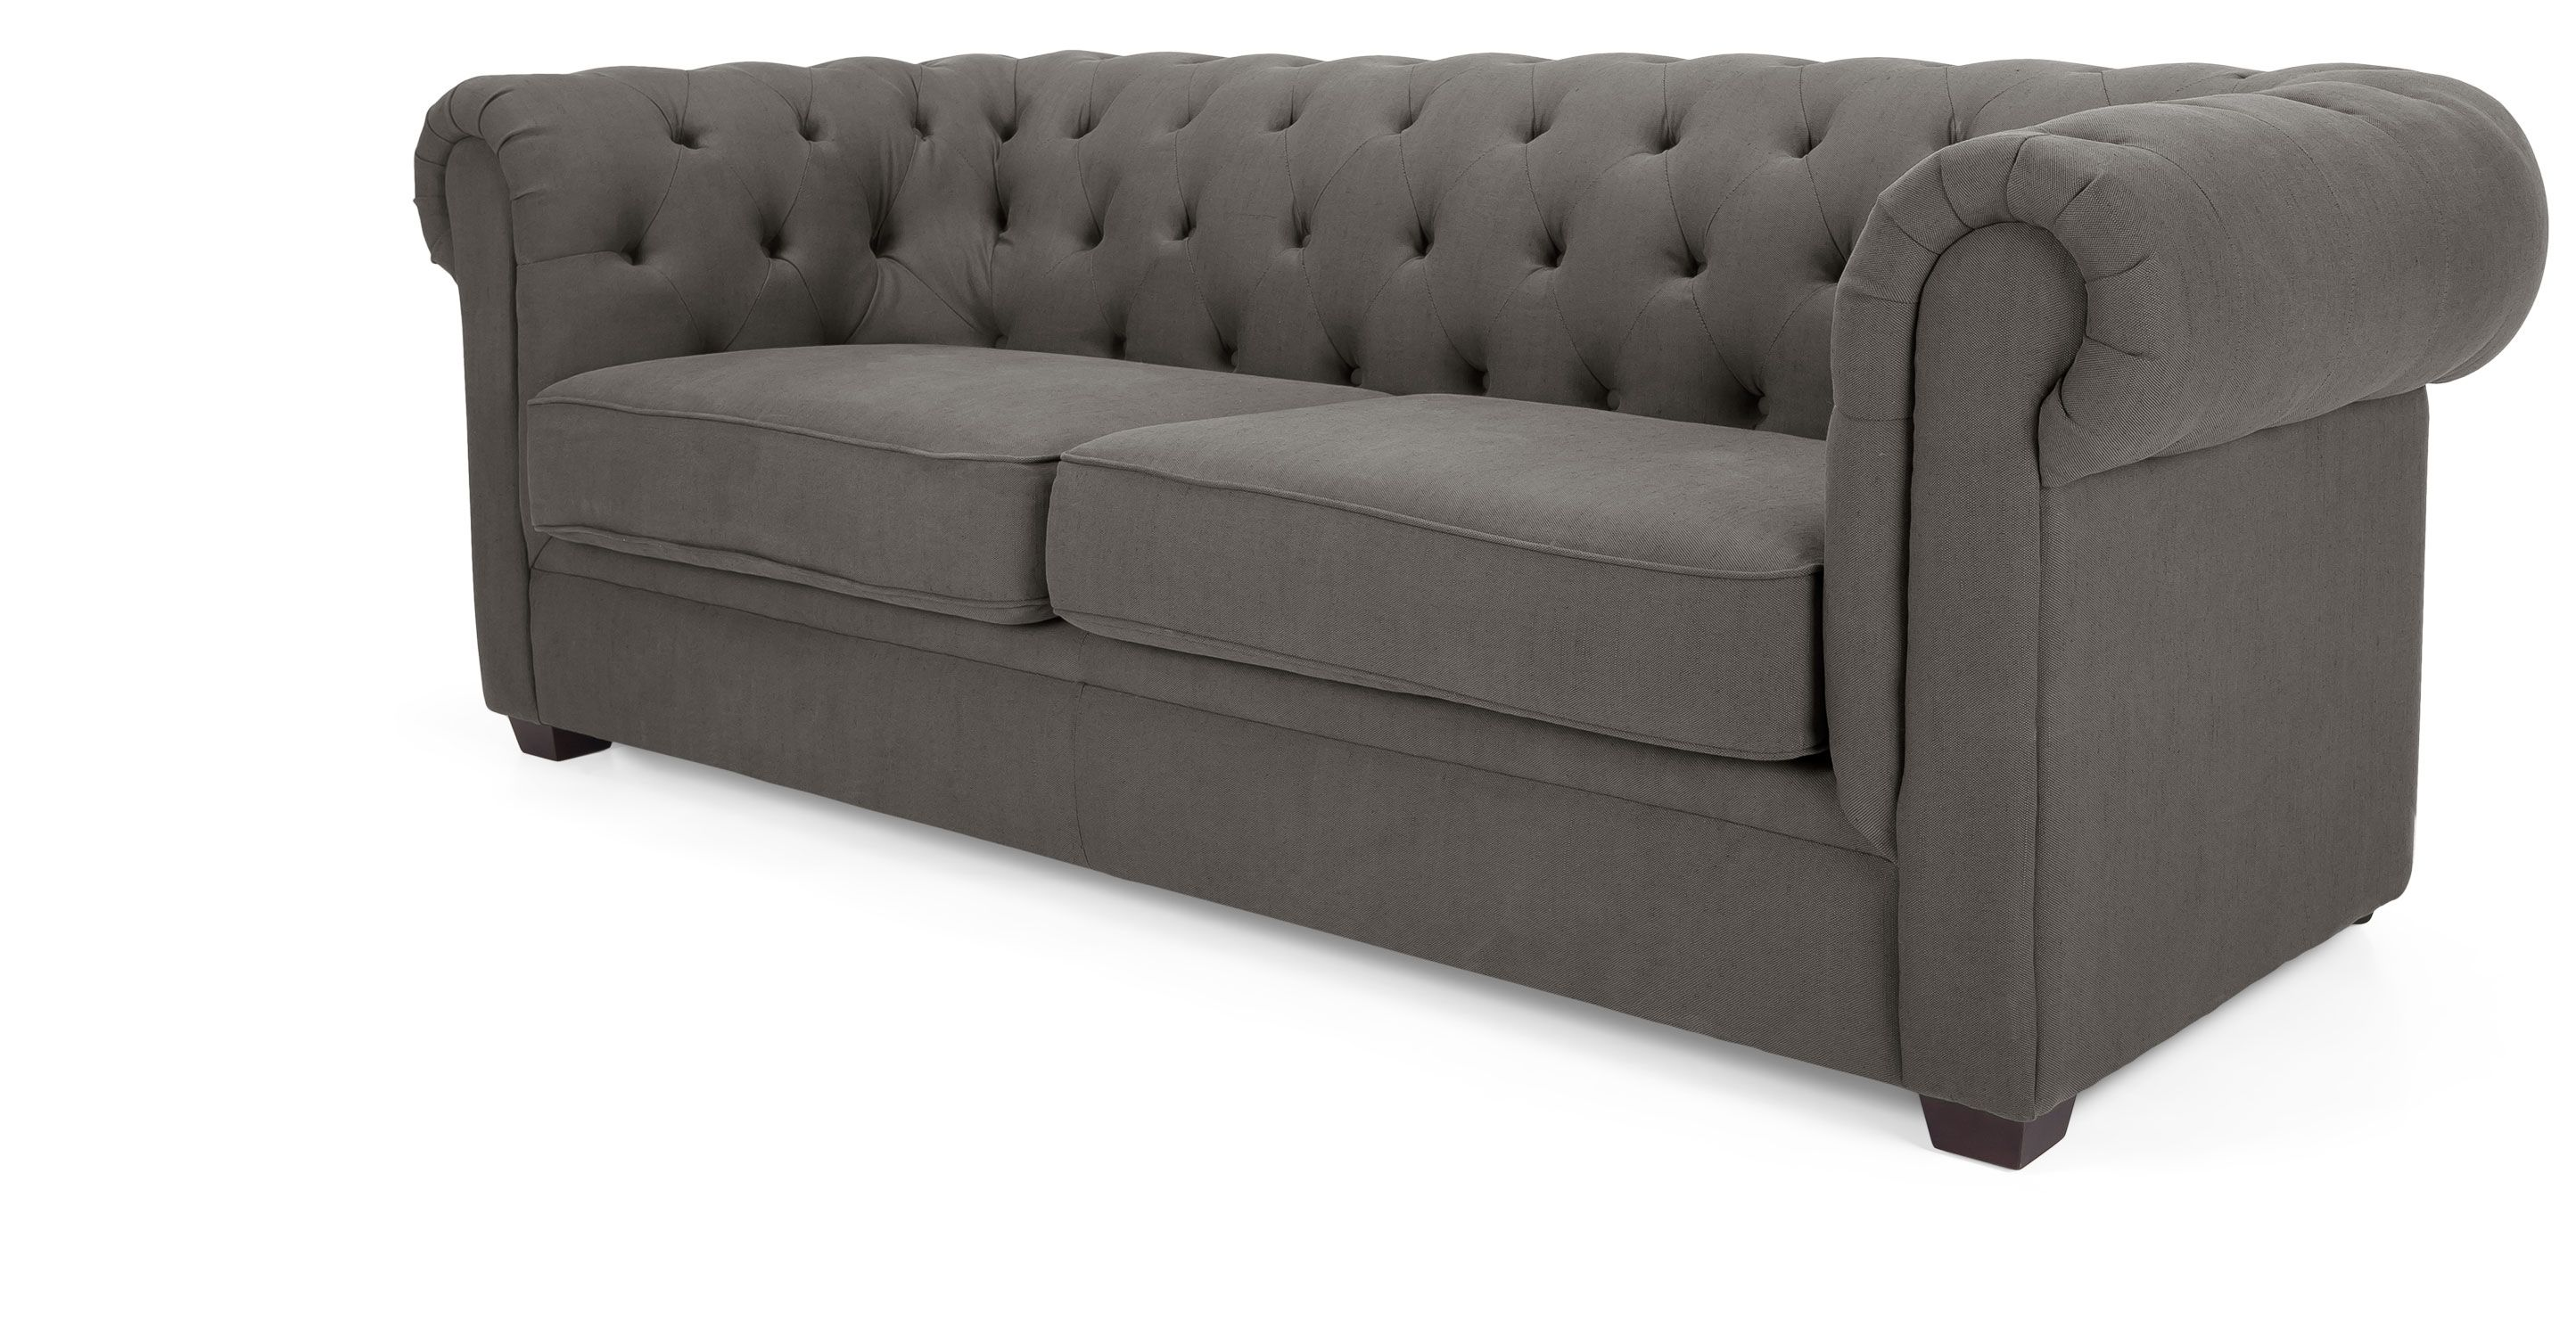 bardot 3 seater chesterfield sofa dawn grey chesterfield chesterfield sofa and grey chesterfield sofa leather 3